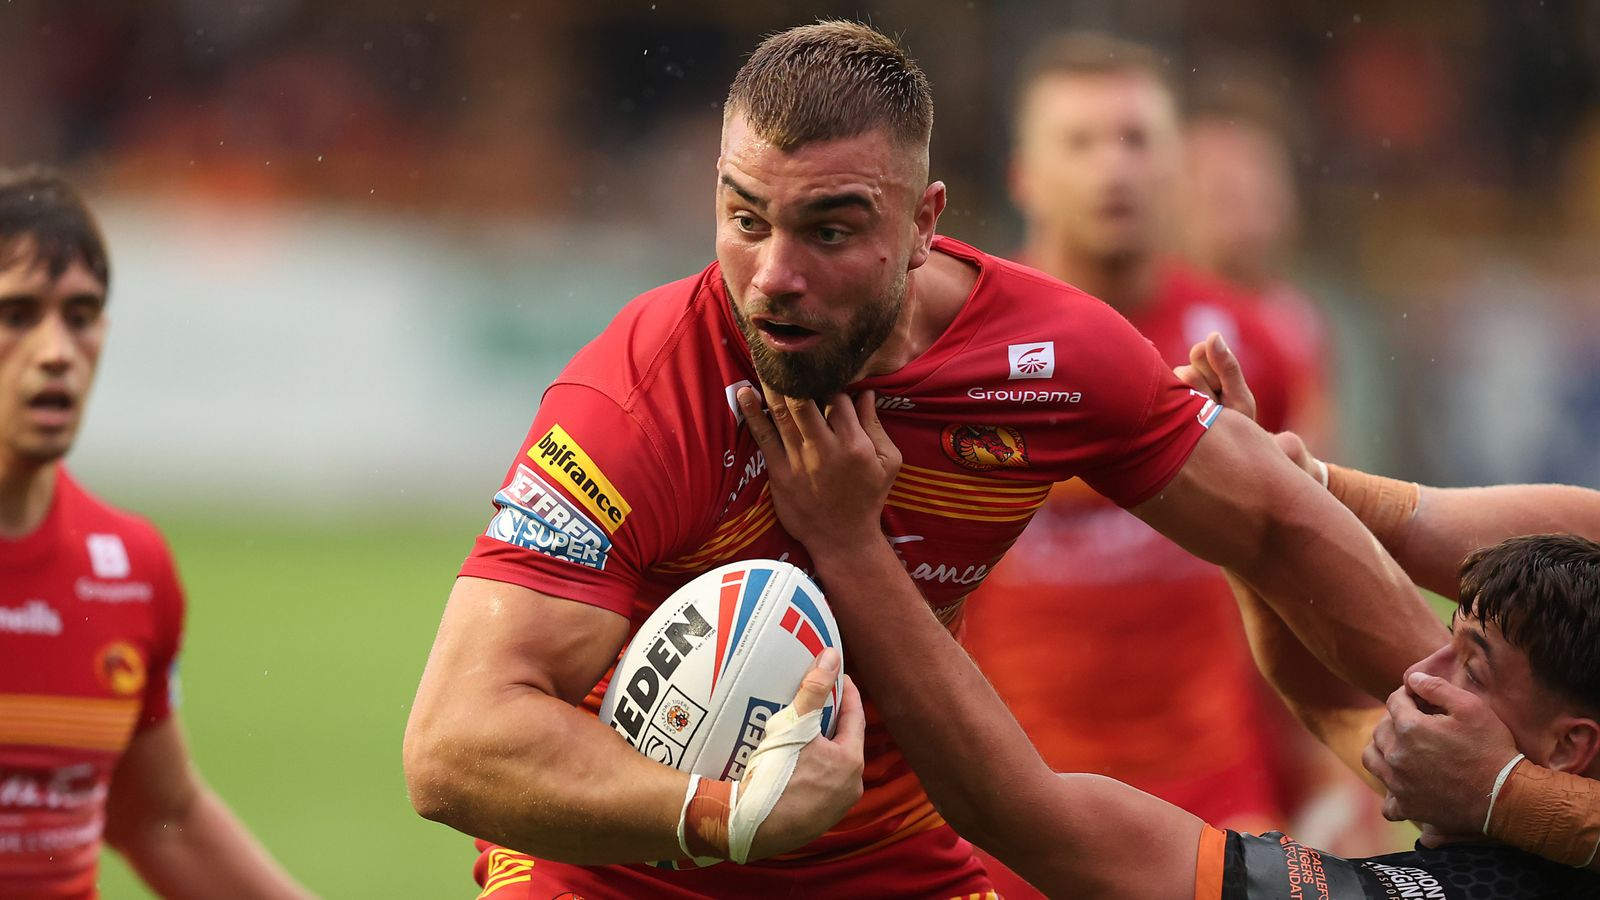 Castleford 16-6 Catalans: Dragons continue to impress with win at Castleford